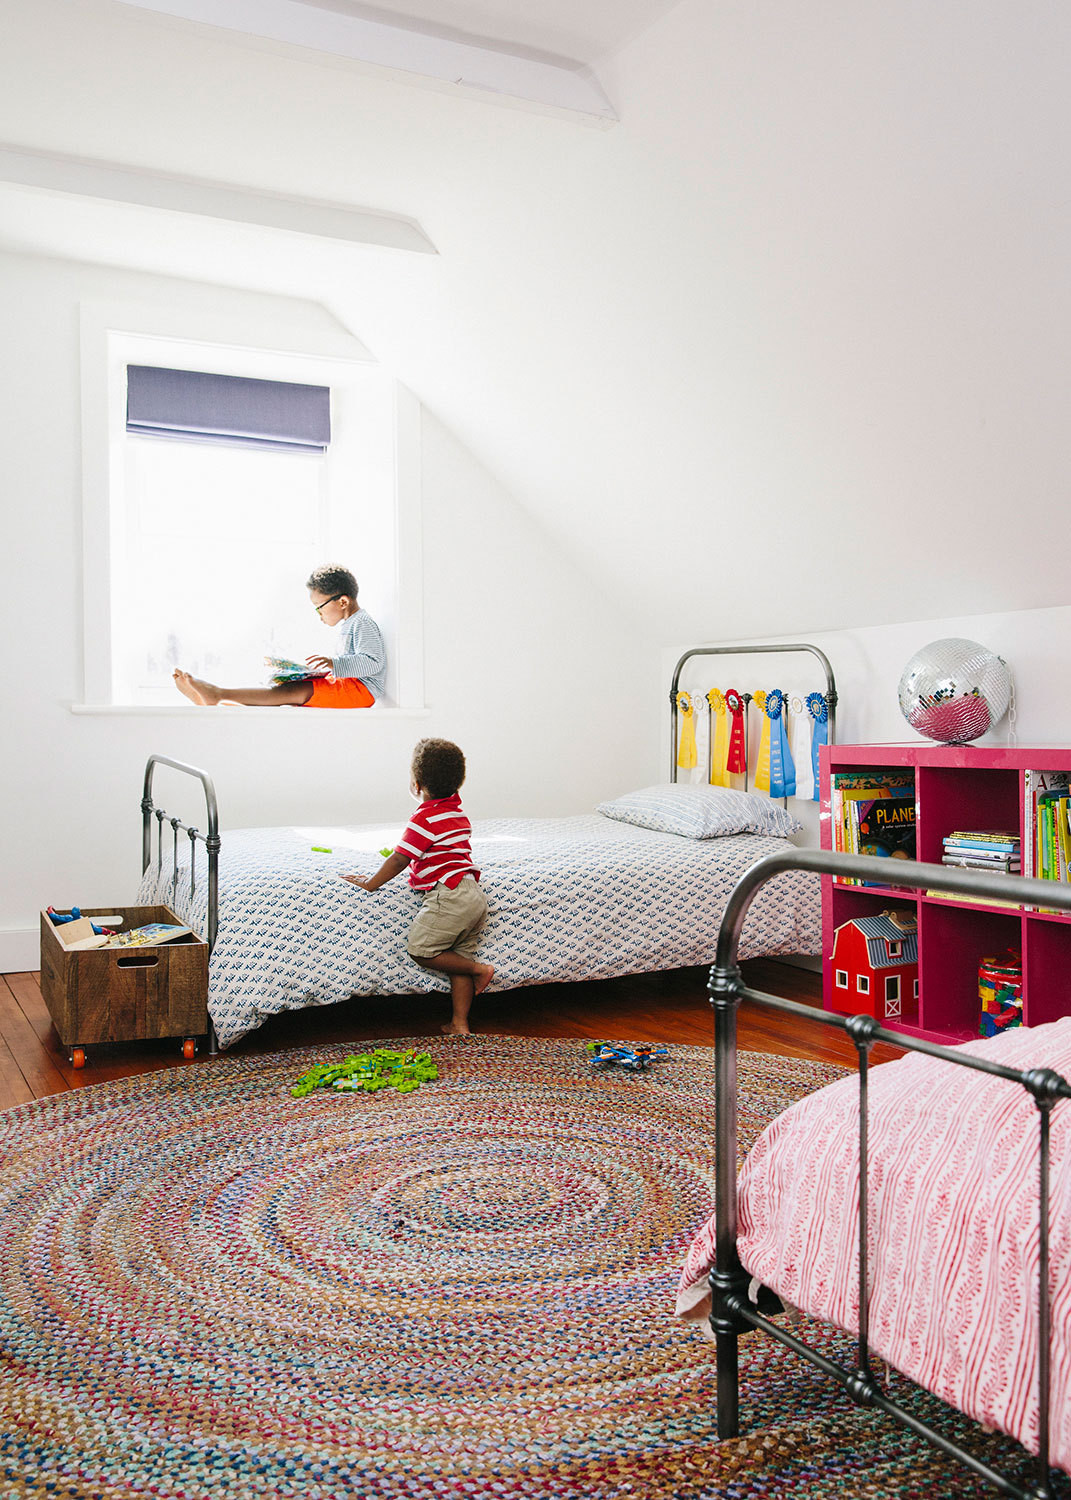 The Kidsu0027 Room Features A Pair Of Iron Beds From Pottery Barn, A Rug